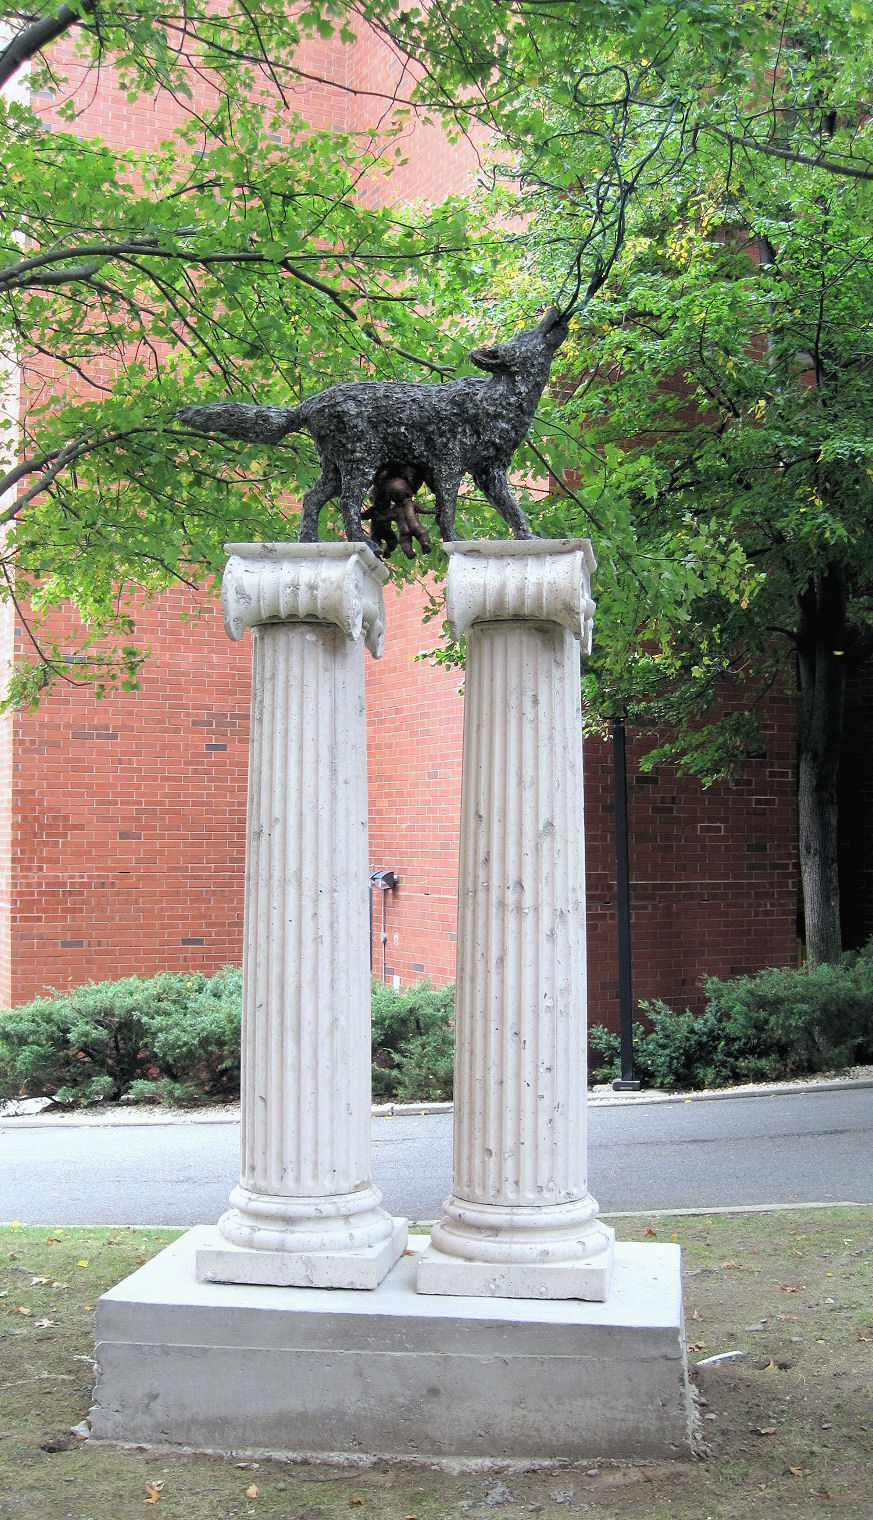 Marsha Pels (American, b. 1950), Lupa, 1998, Cast patinaed bronze on honed concrete columns. Gift of the artist in memory of her mother, Ruth Pels (1917-2005). HHAR 5817.